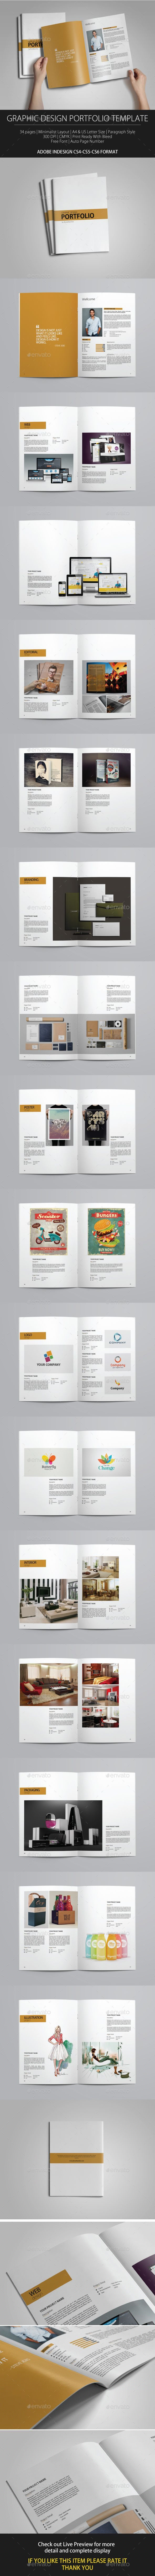 best graphic design portfolios ideas pinterest portfolio brochure ...